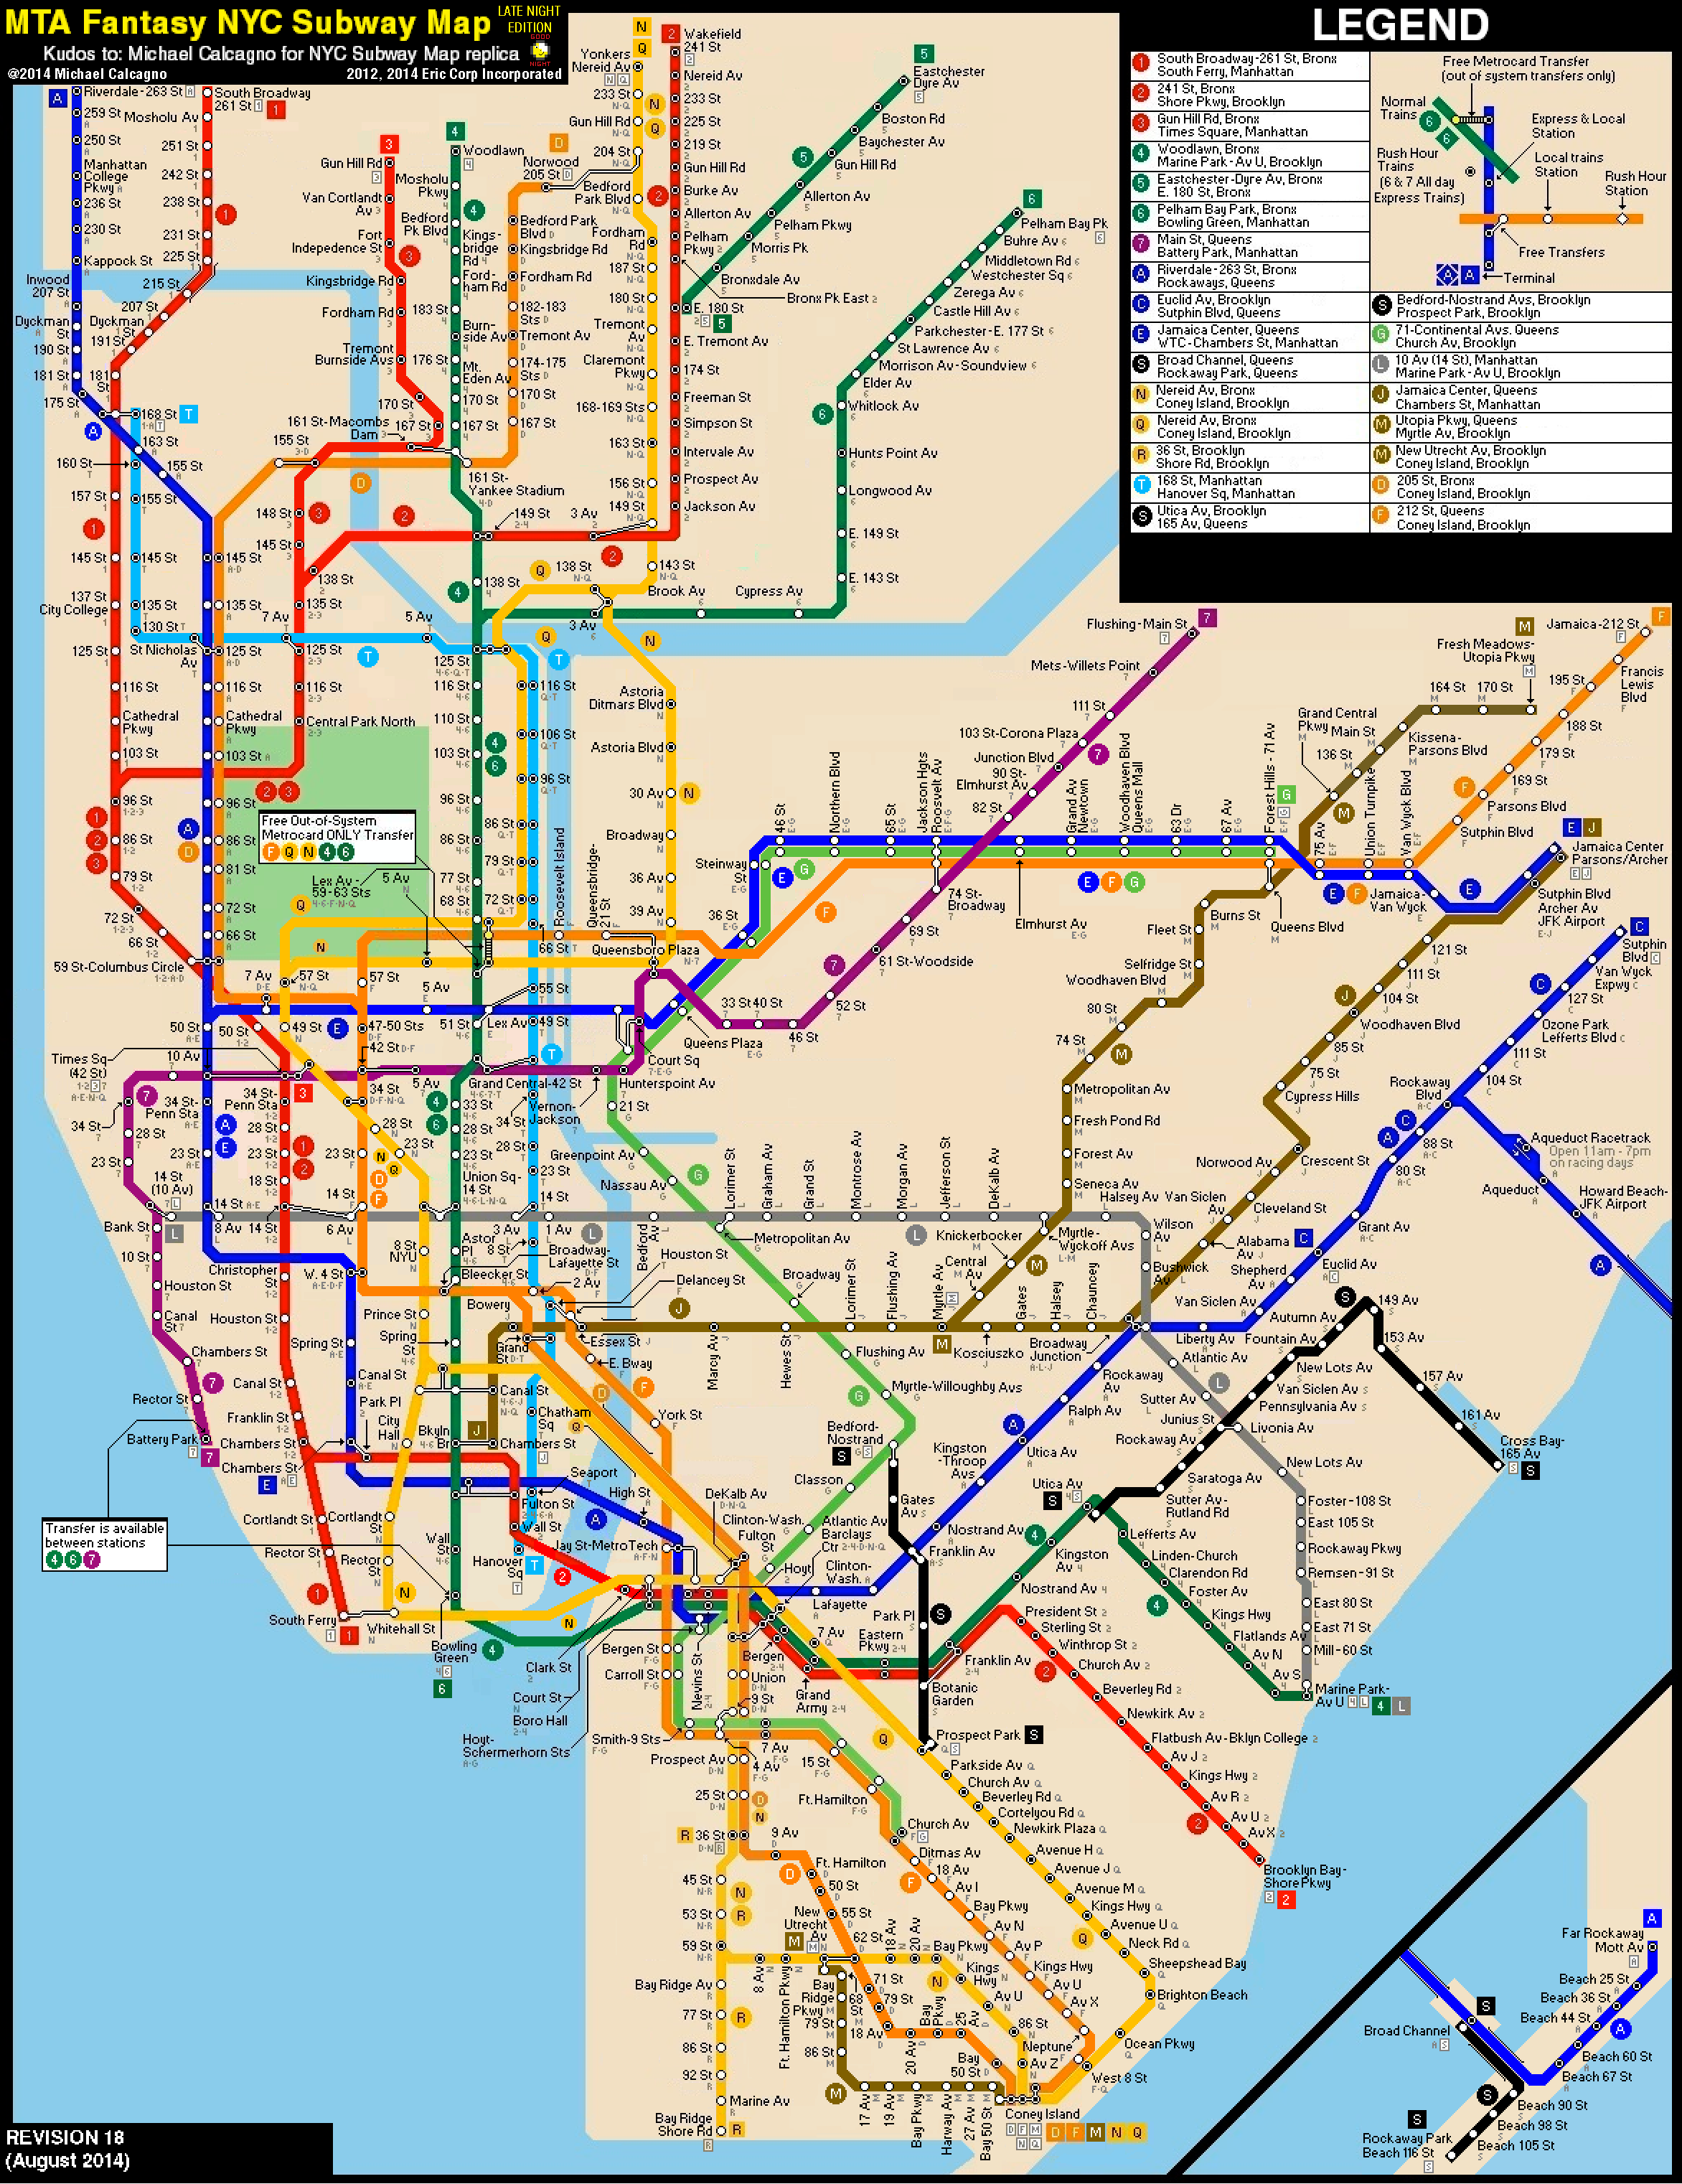 subway map f train Nyc Subway Fantasy Map Revision 18 Late Nights By Ecinc2xxx On